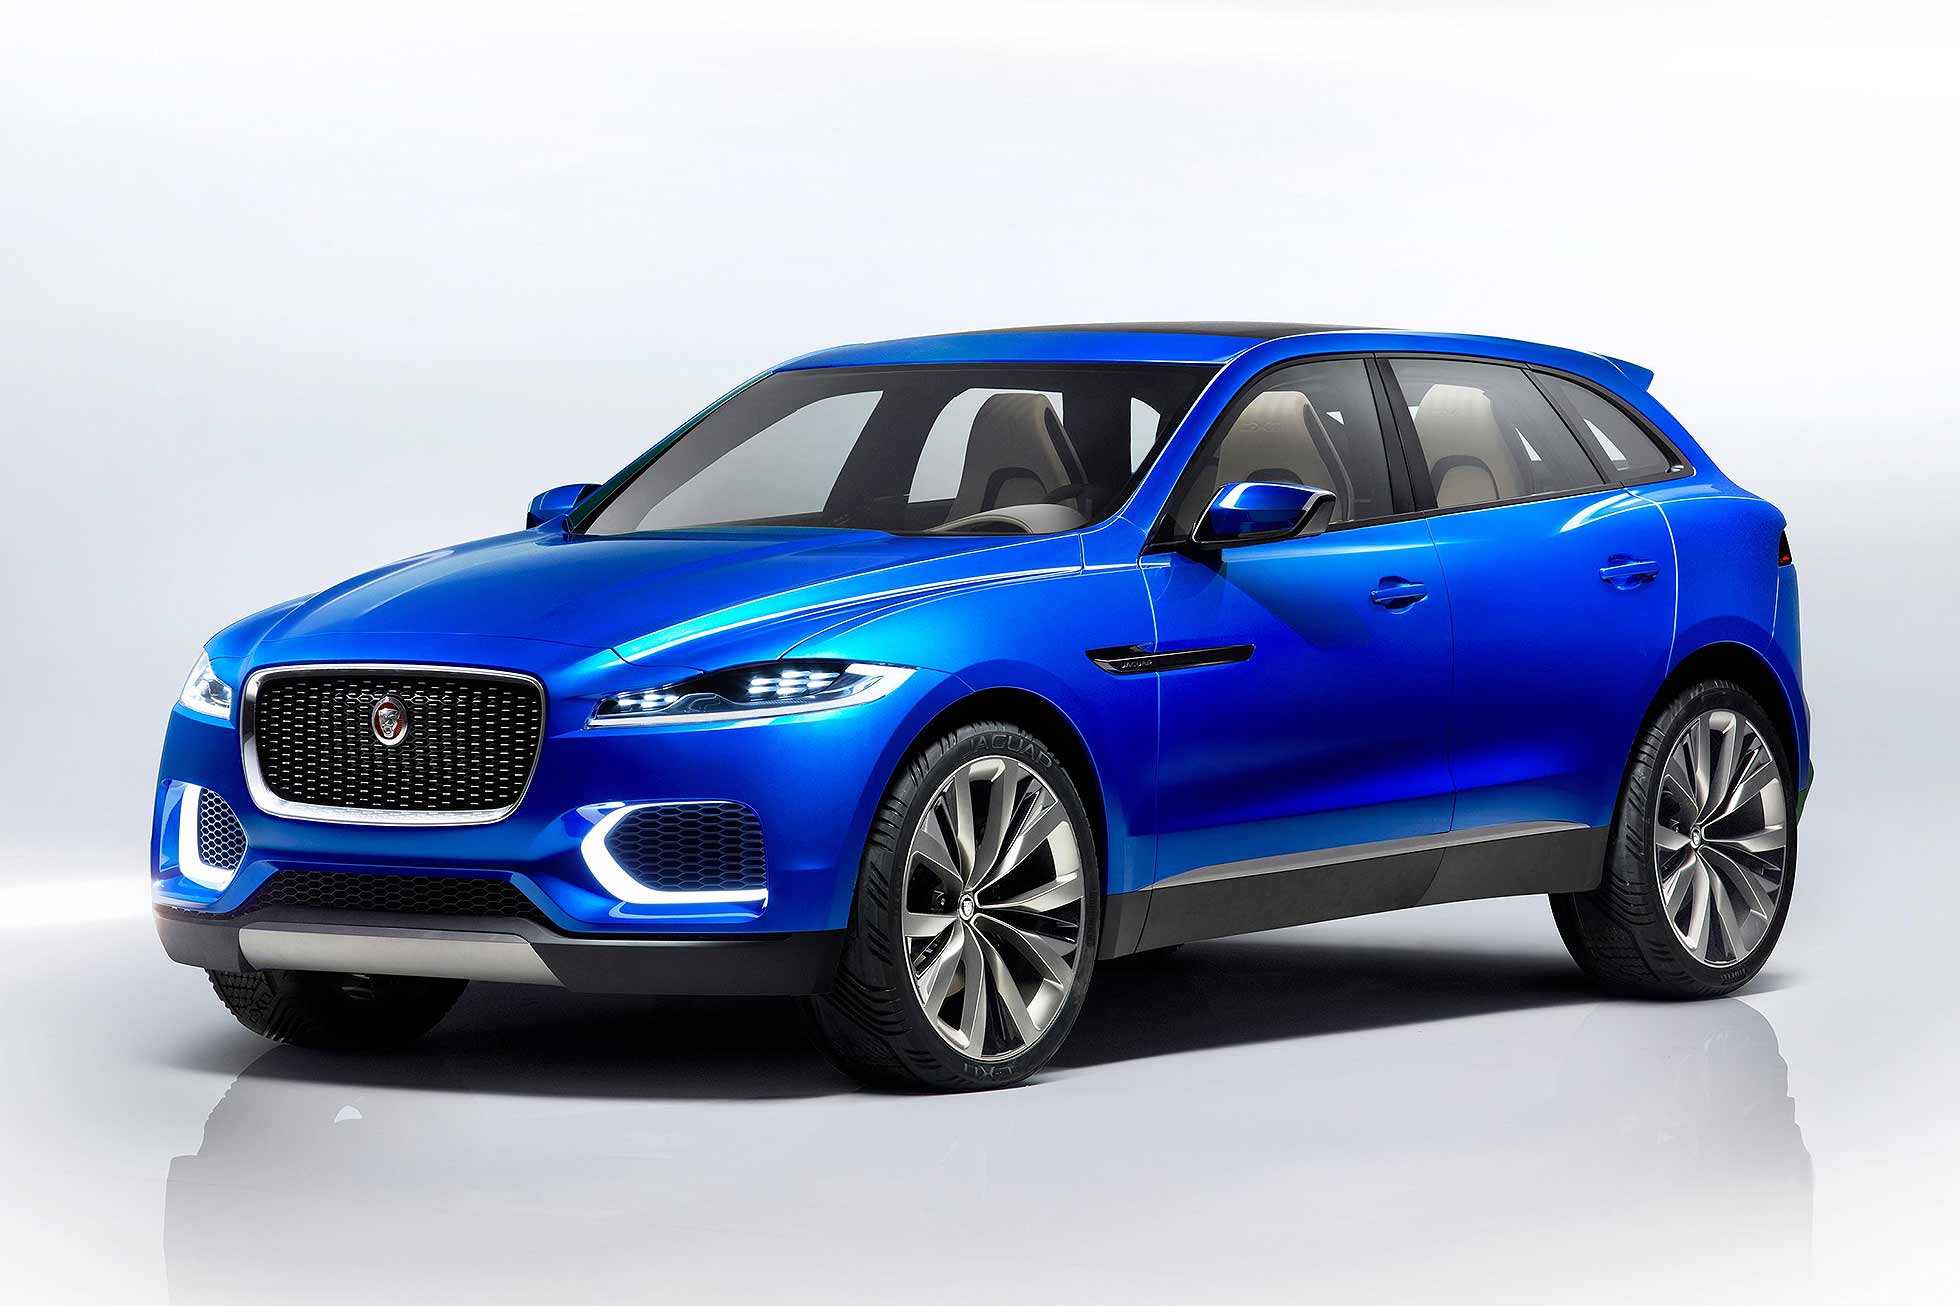 2016 F-Pace exterior image